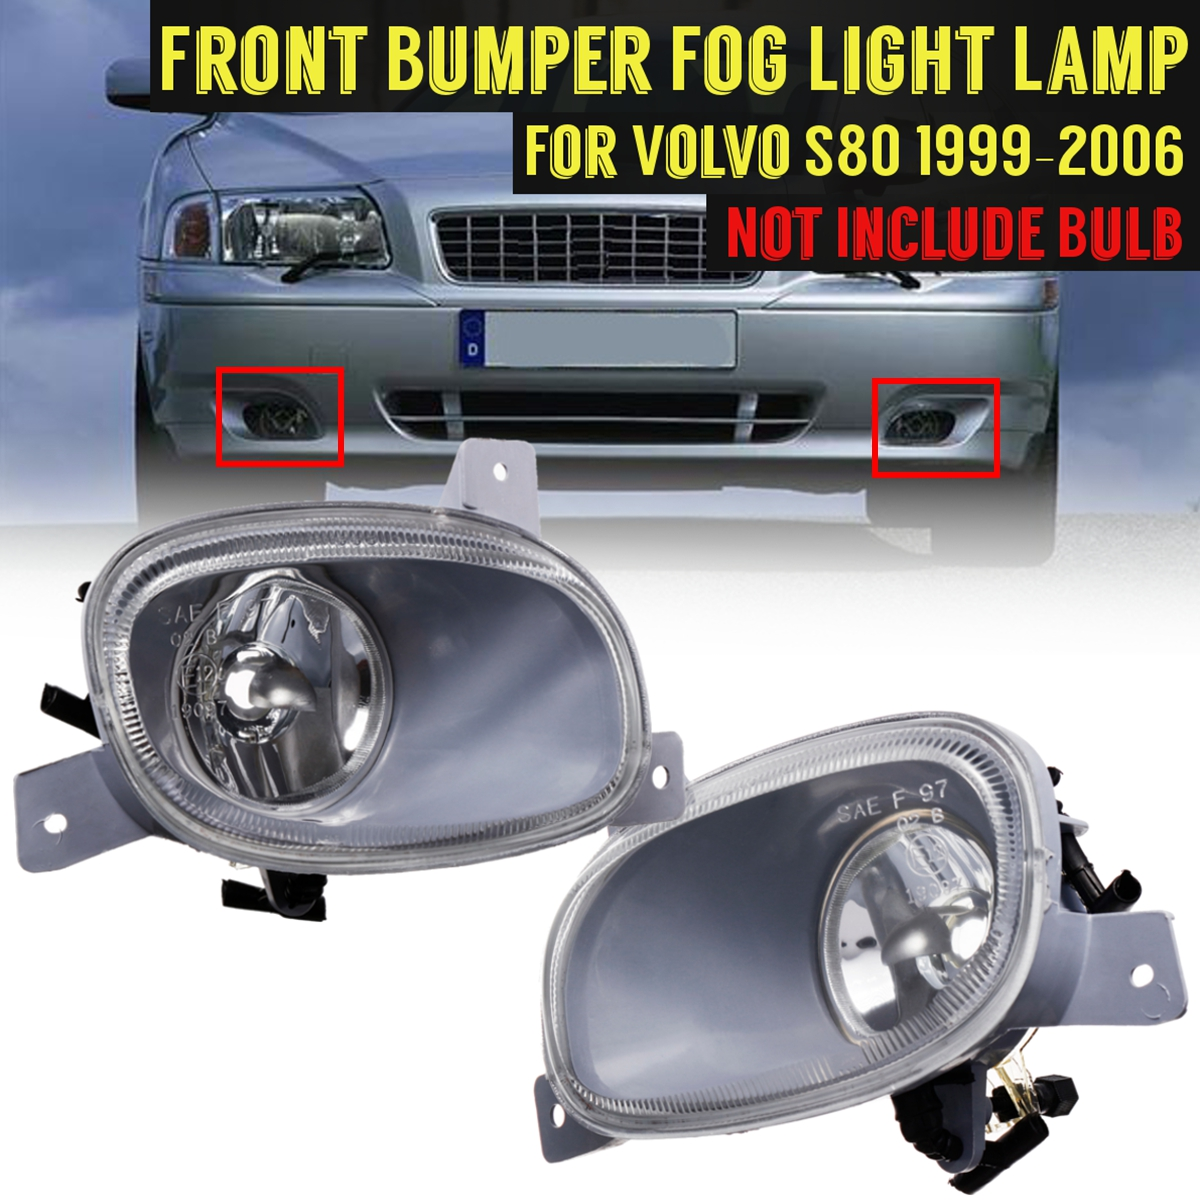 For Volvo S80 1999 2000 2001 2002 2003 2004 2005 2006 8620224 8620225 1 Pair Front Bumper Fog Light With no Bulb Lamp for 2001 2002 2003 2004 2005 porsche 996 911 4s coupe turbo oe style no hole carrera front bumper lip spoiler